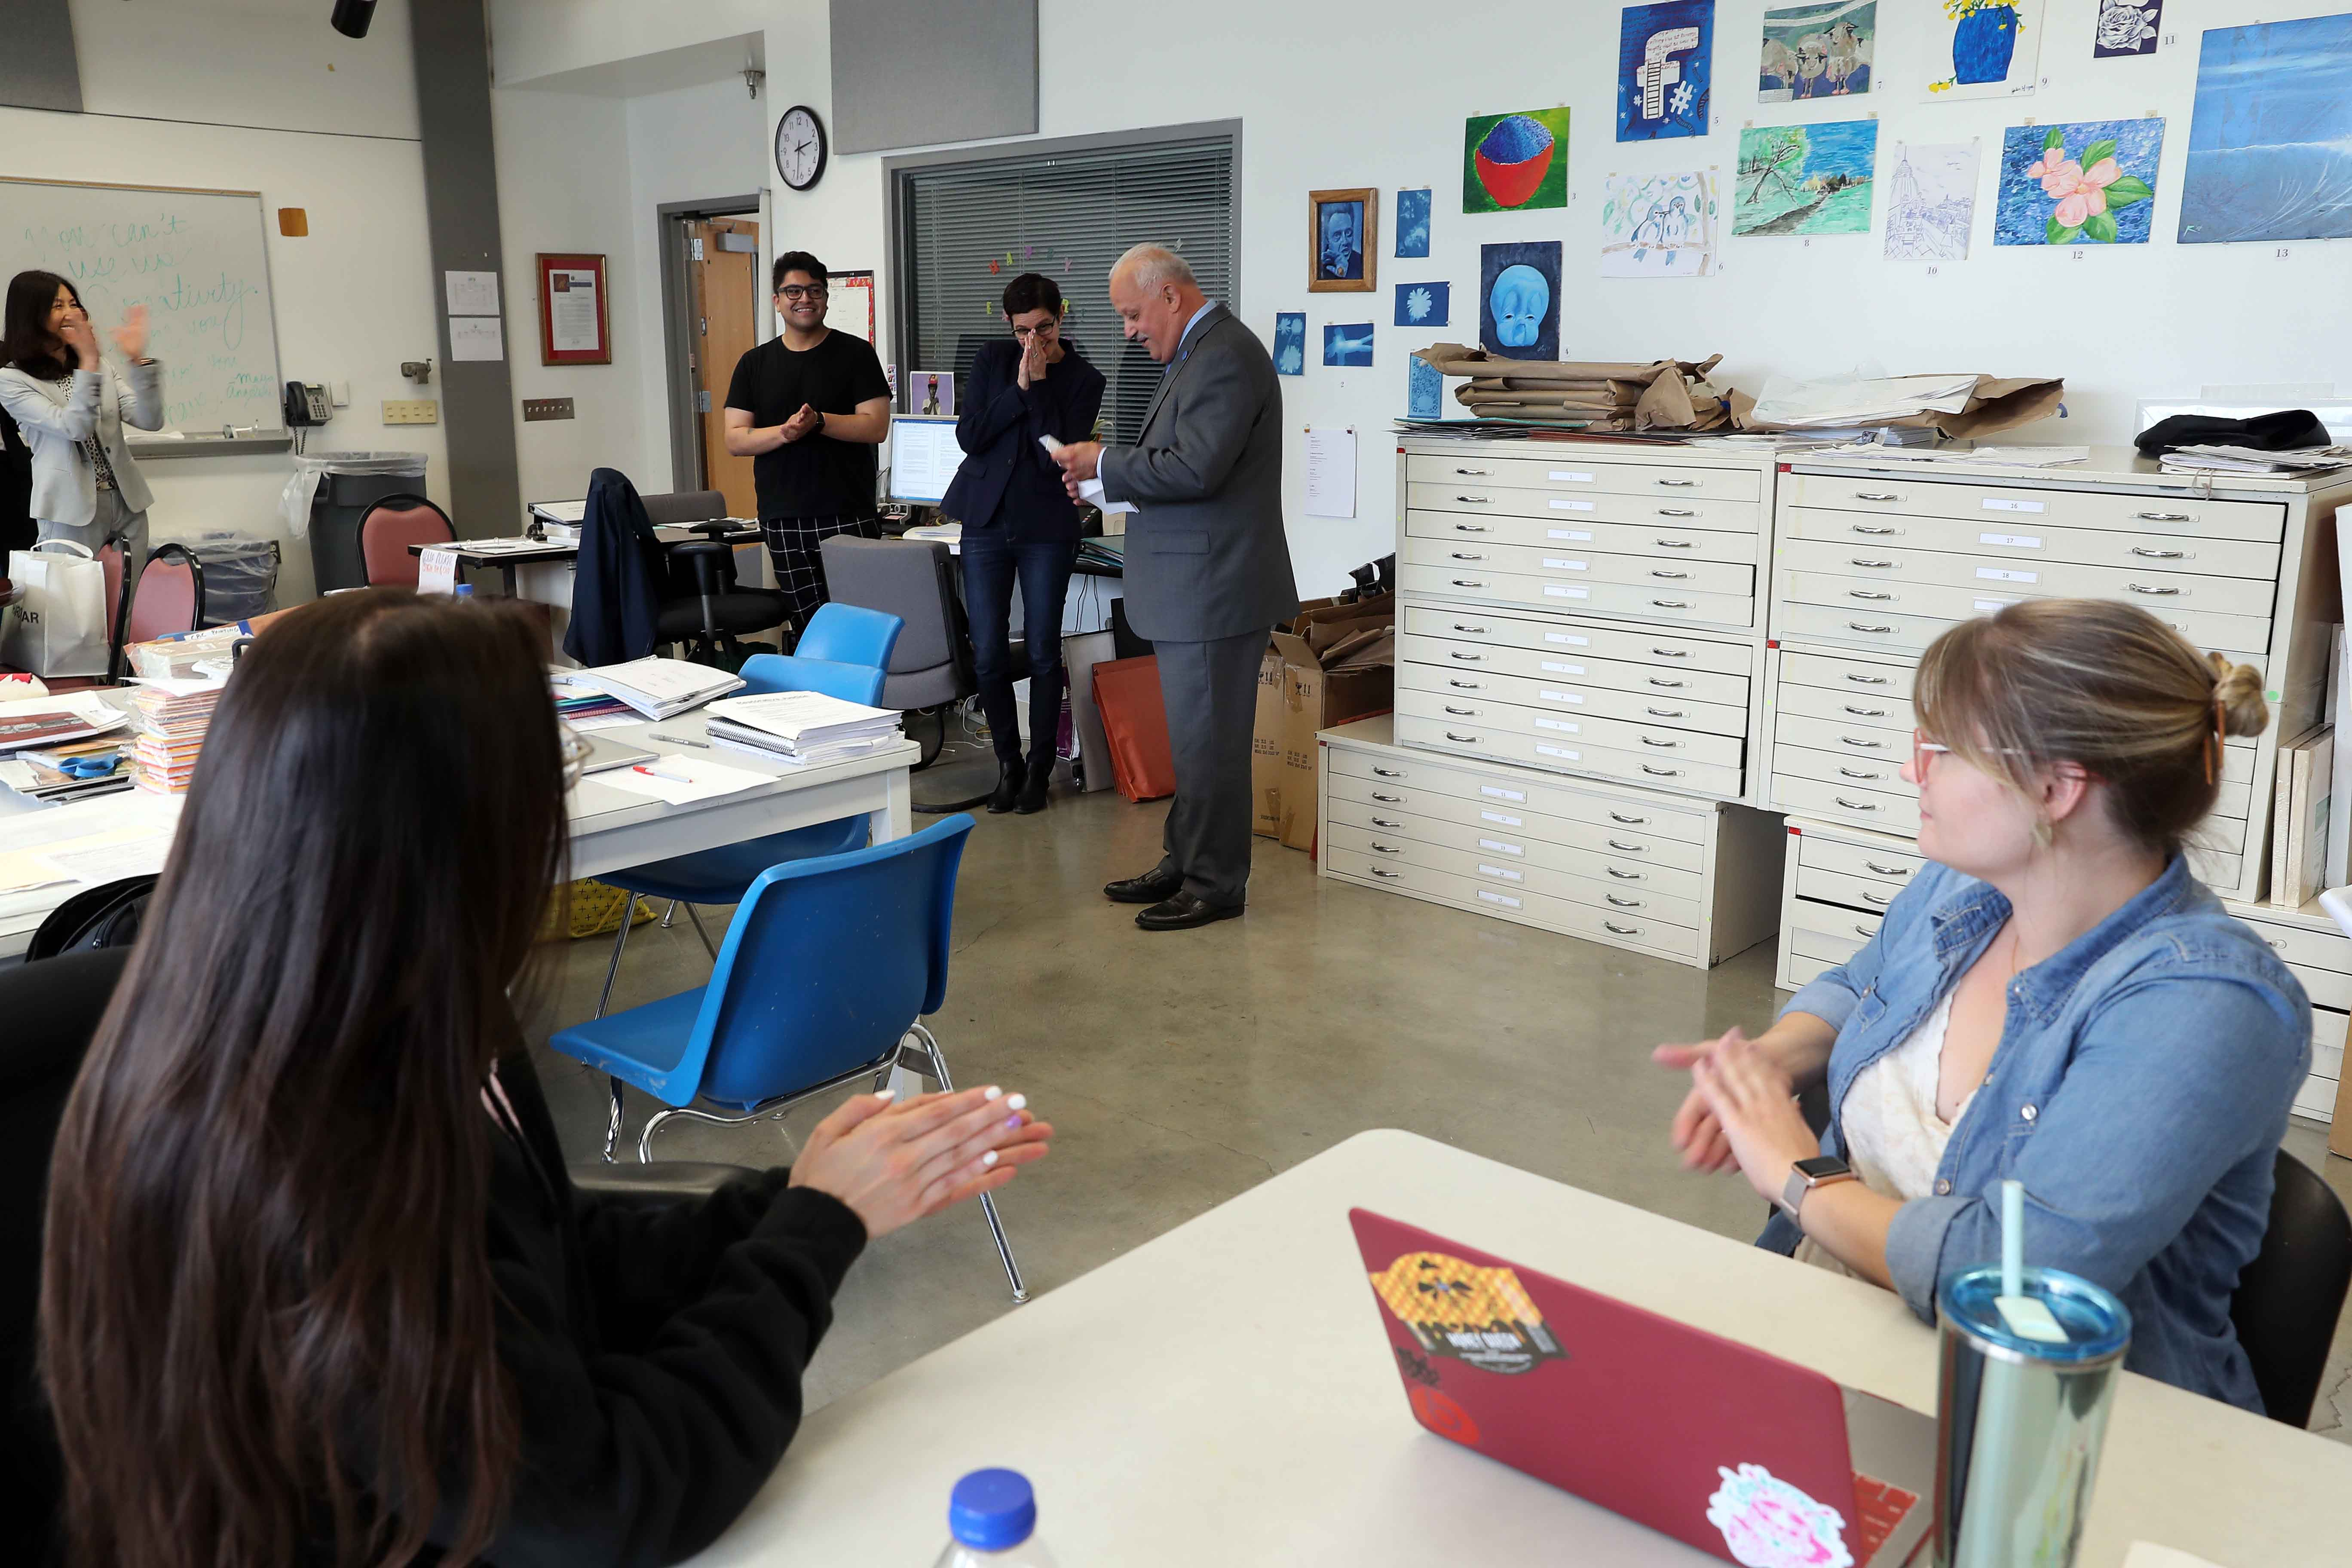 Professor Annie Buckley's meeting of staff and students in the Prison Arts Collective was interrupted on Wednesday, May 8, by President Tomás D. Morales and CSUSB's senior leadership, the College of Arts & Letters and her fellow art department colleagues.